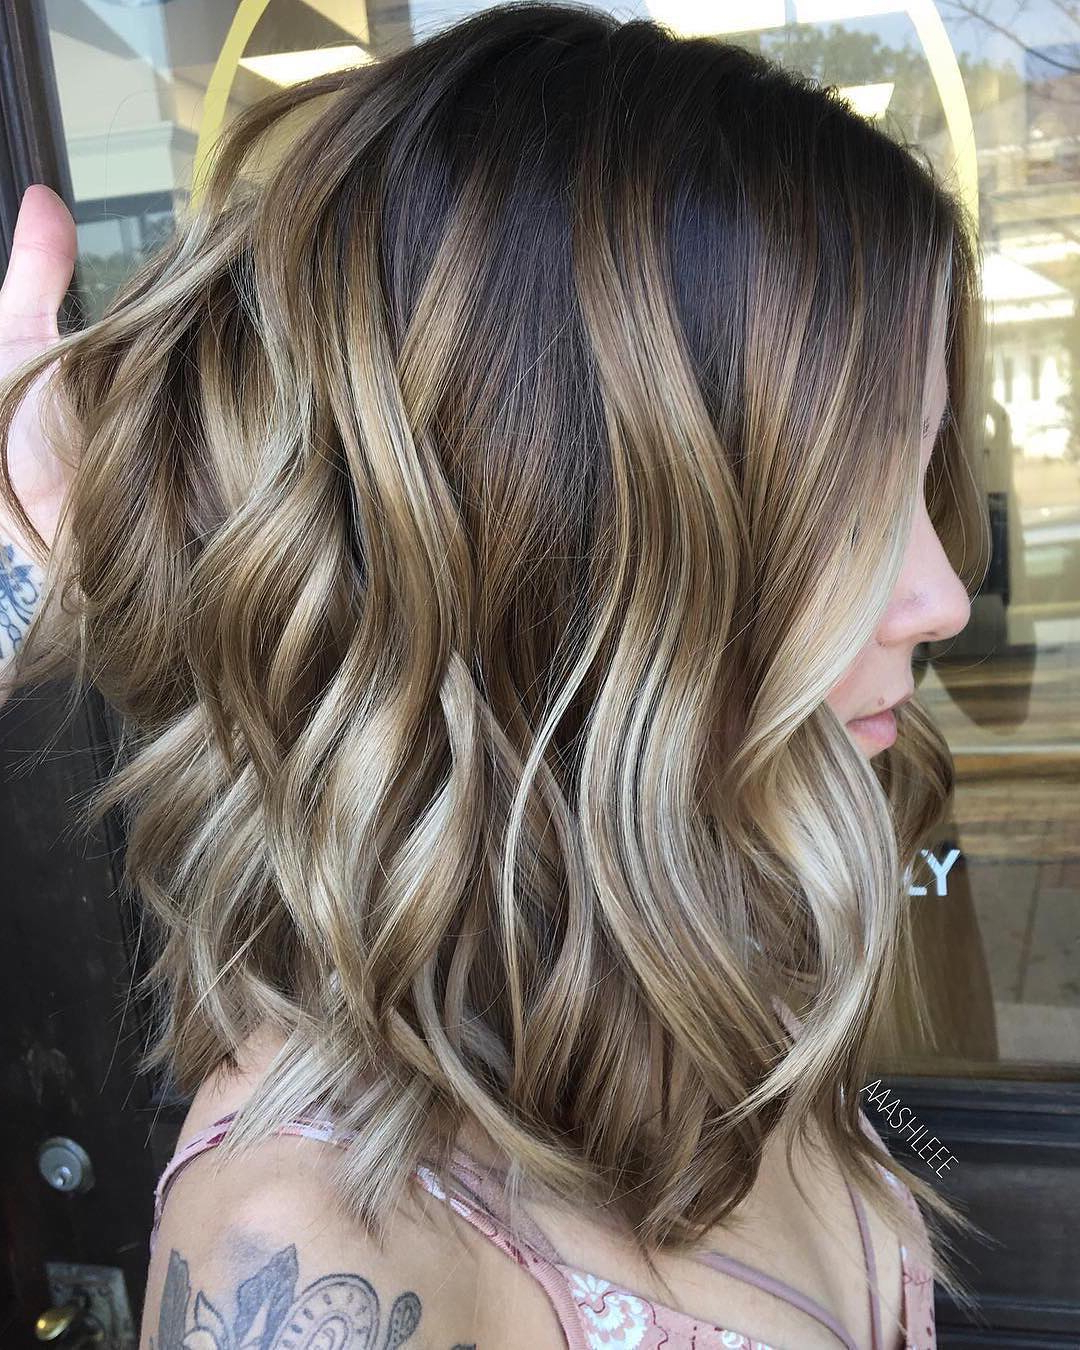 10 Ombre Balayage Hairstyles For Medium Length Hair, Hair Color 2019 In Well Known Layered Ombre For Long Hairstyles (Gallery 9 of 20)